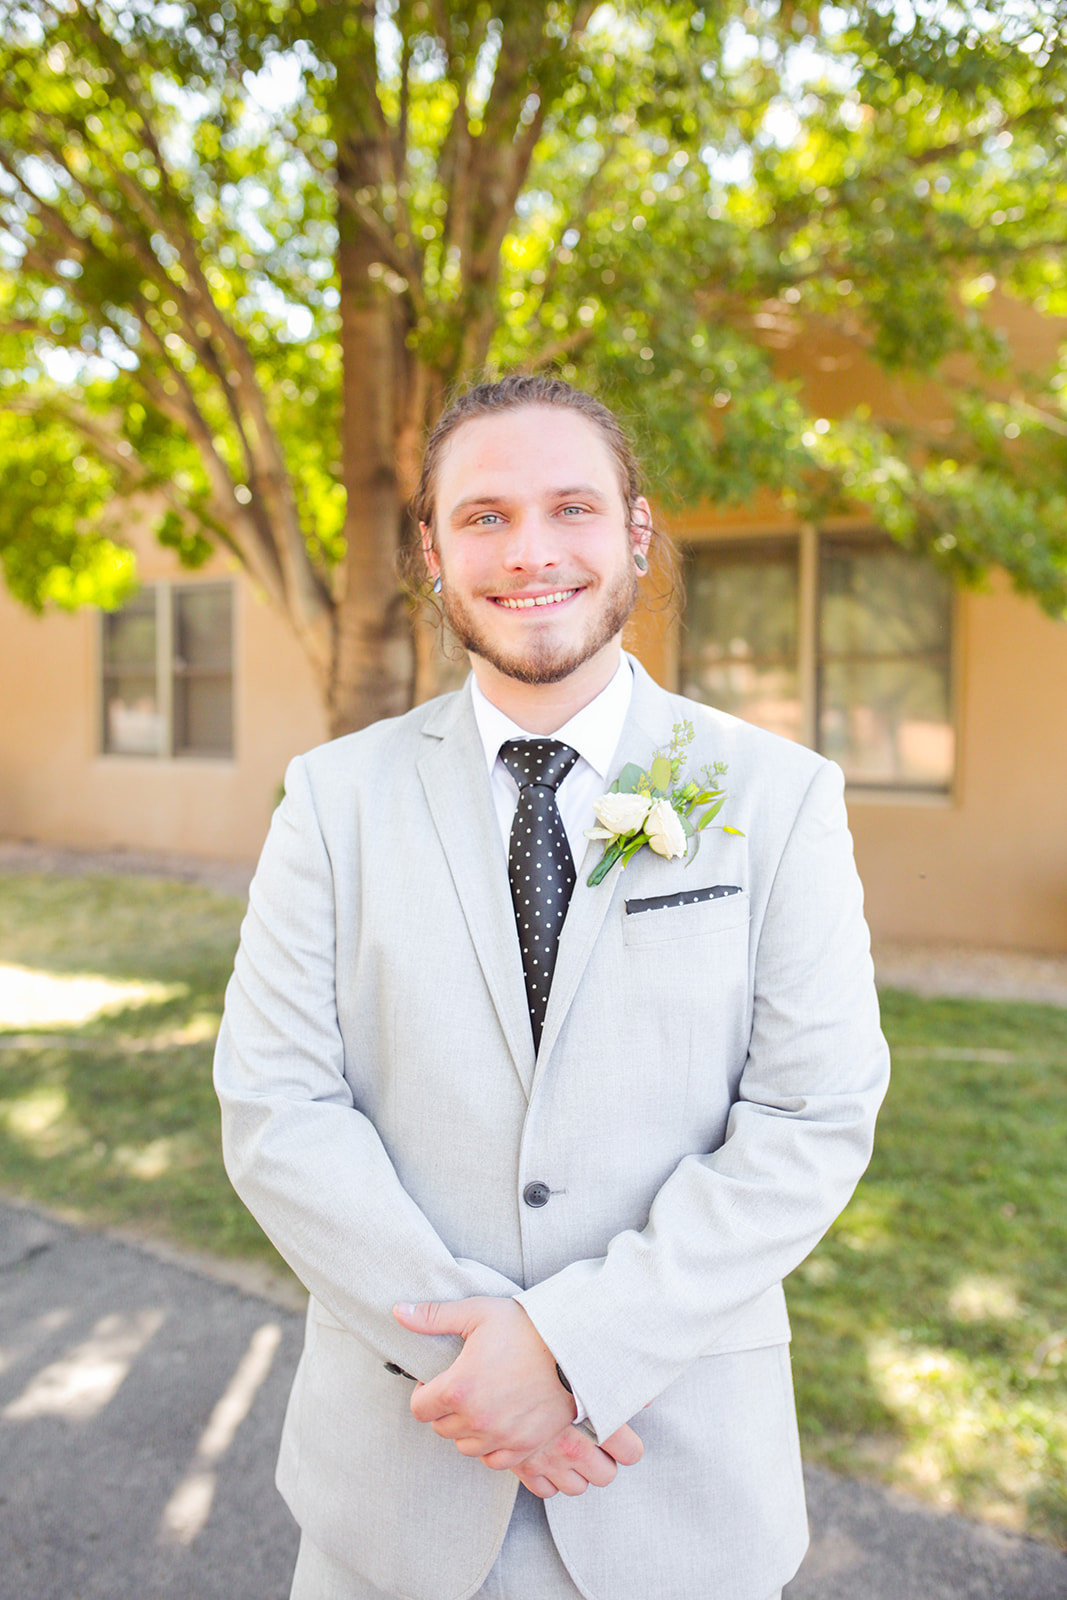 Albuquerque Wedding Photographer_Catholic Wedding_www.tylerbrooke.com_Kate Kauffman_038